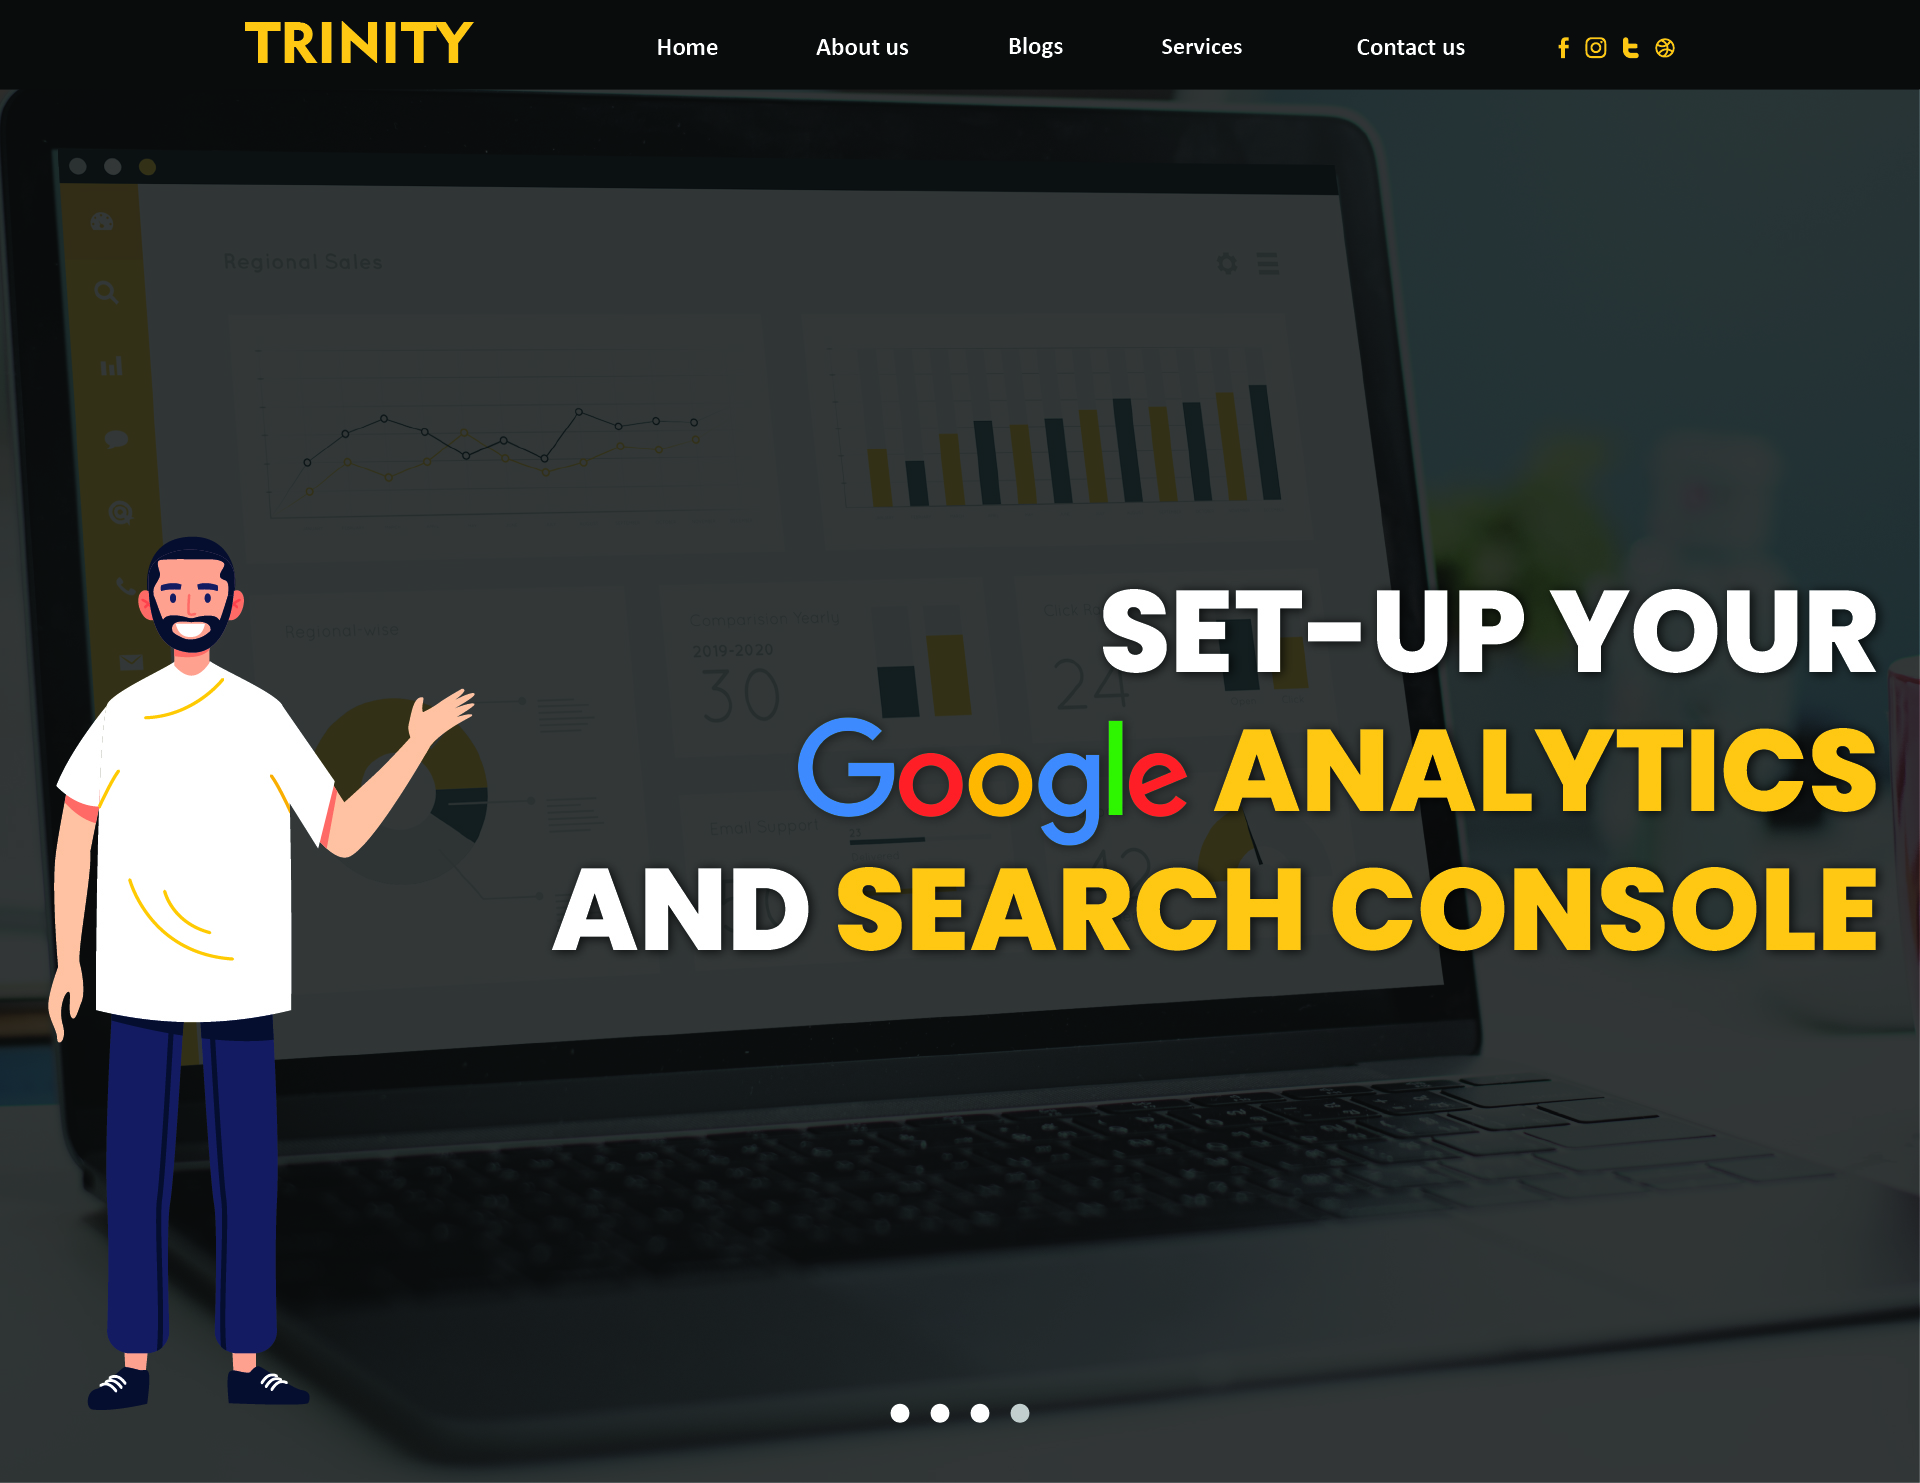 I will set up your google analytics and search console for your website